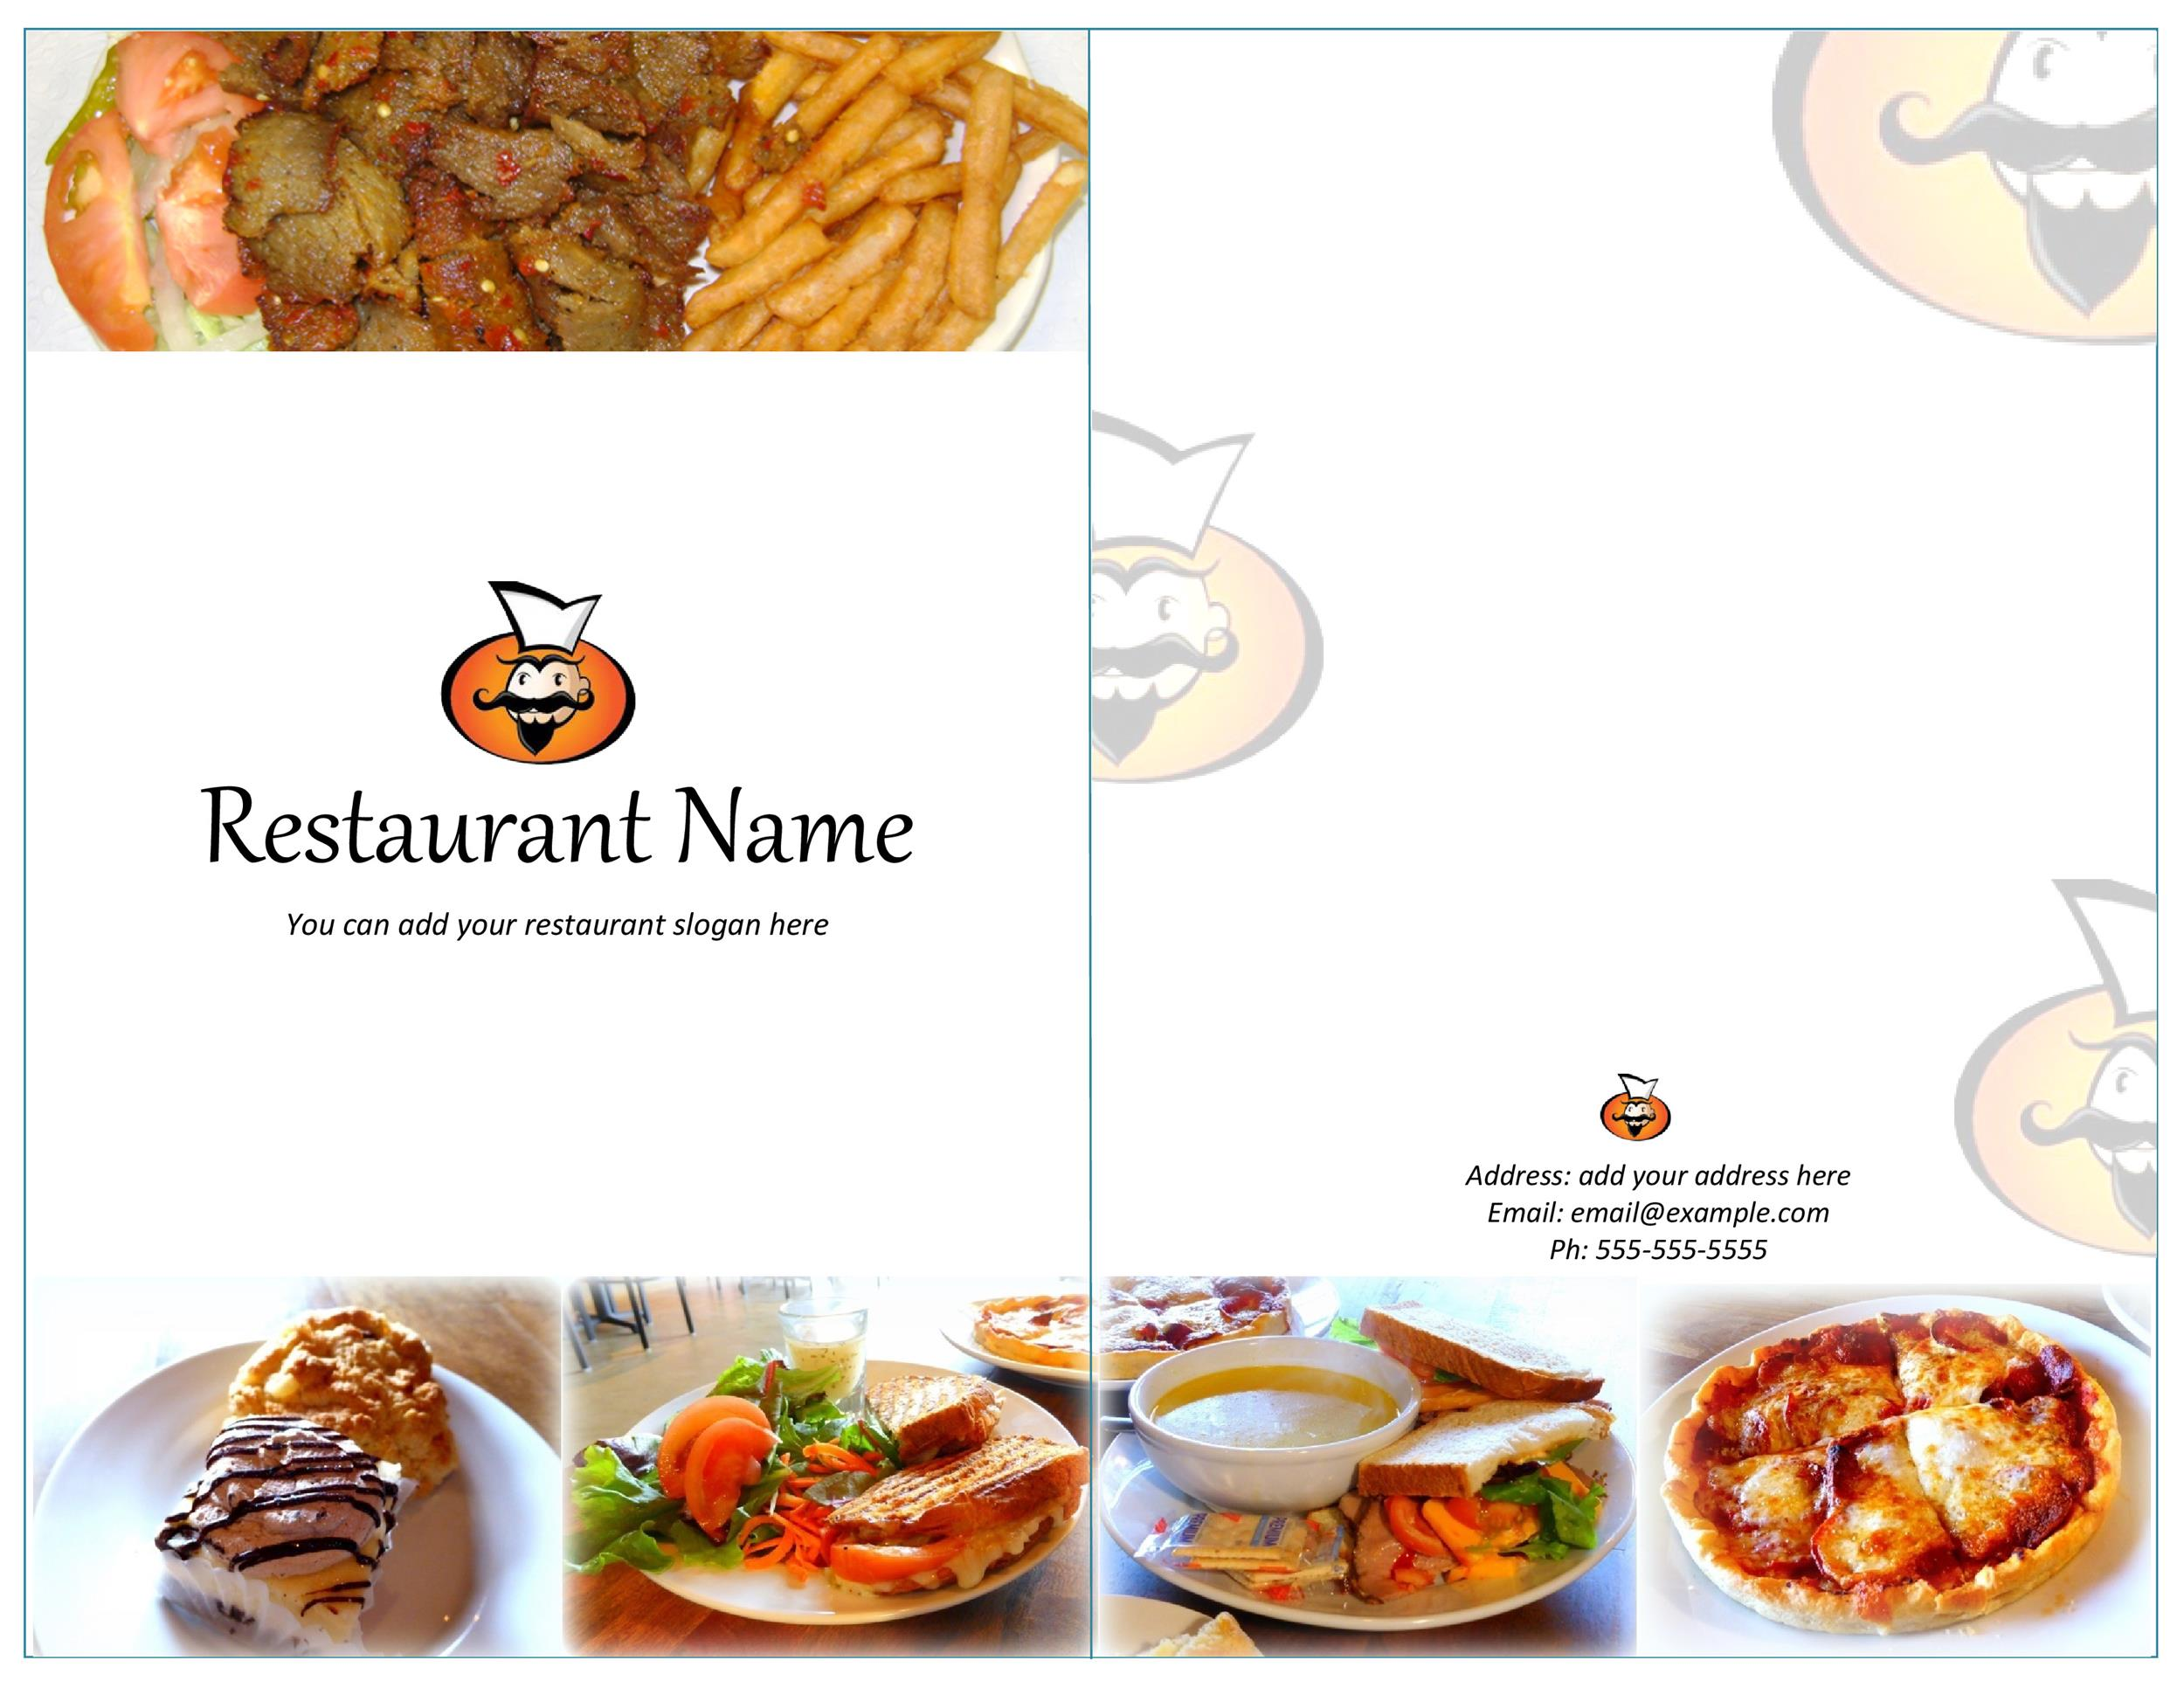 Menu Design Template. Restaurant Menu Template Menu Design Projects ...